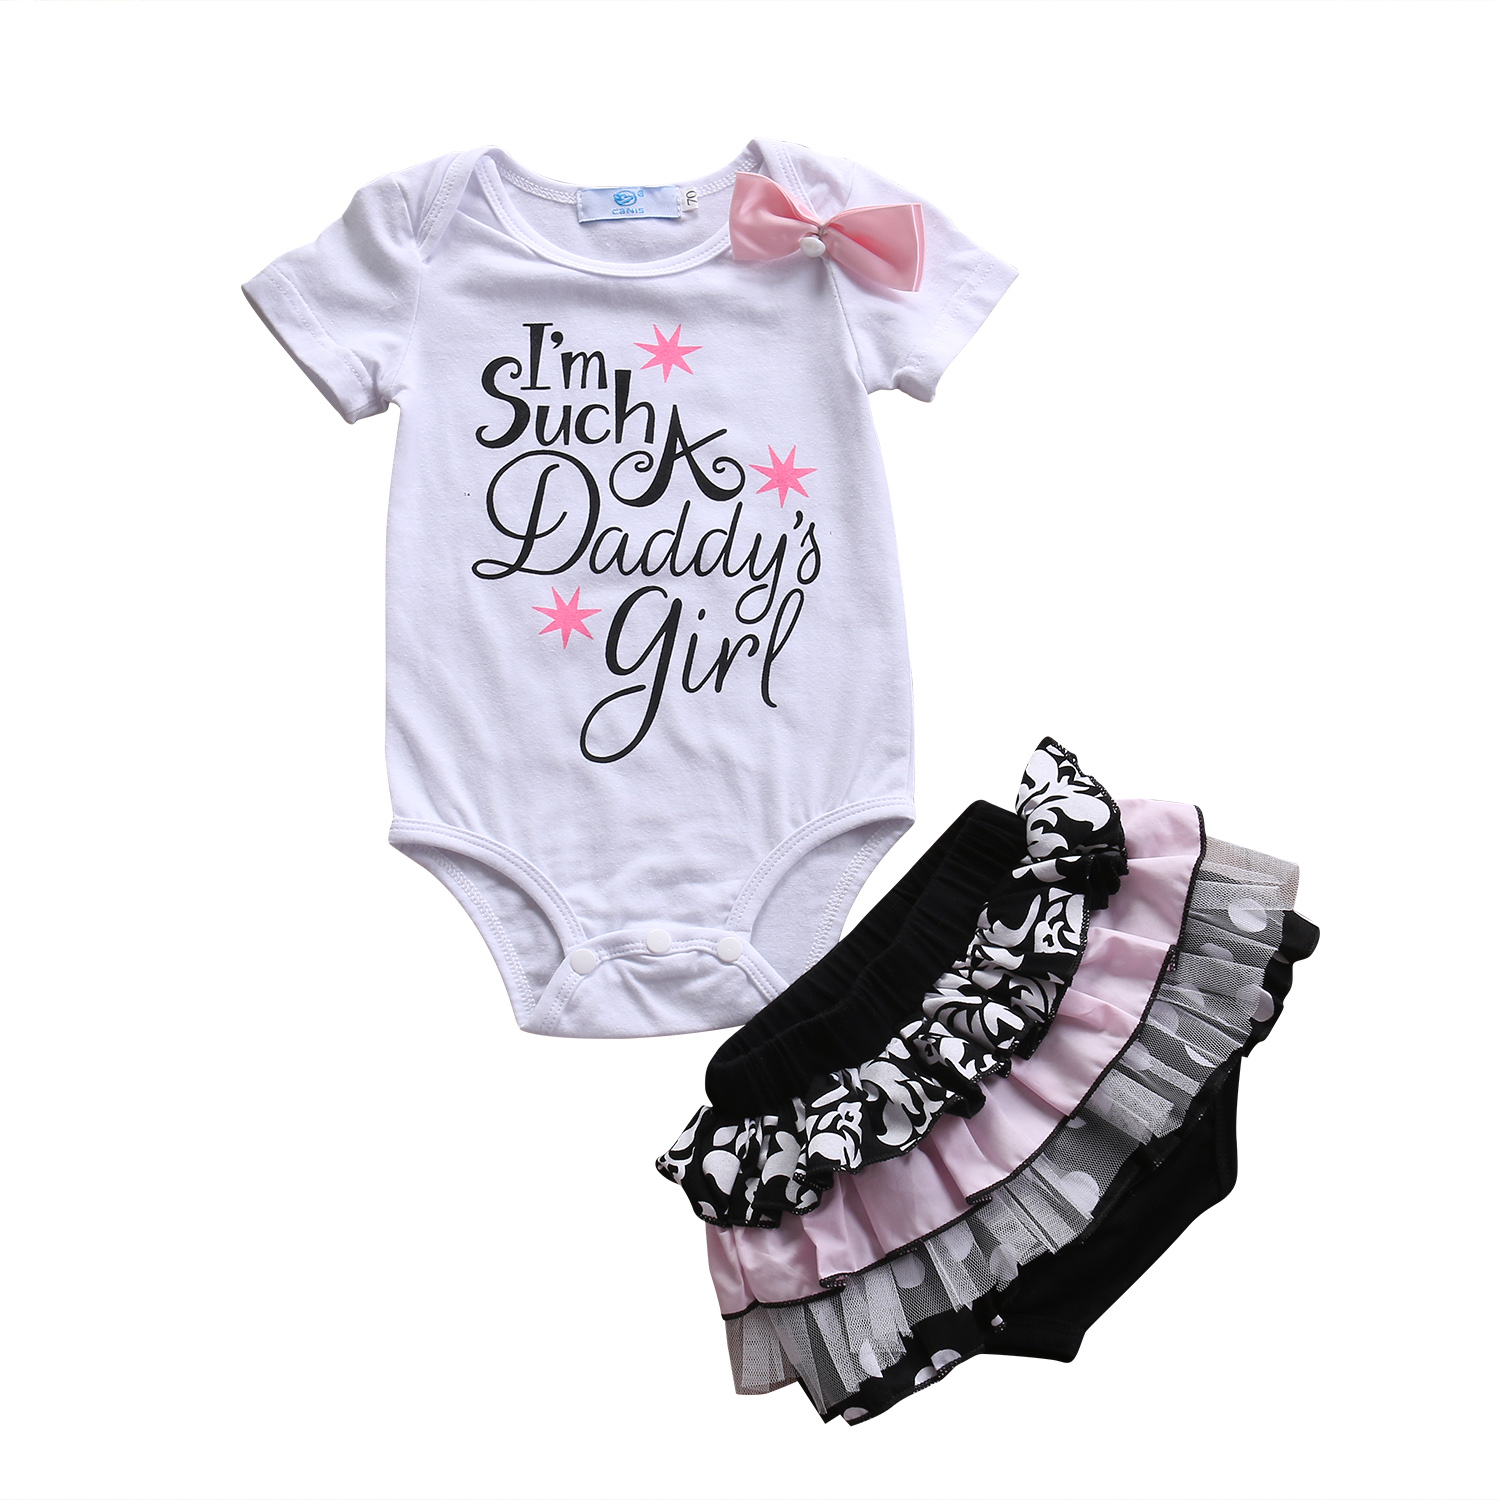 New Style Newborn Baby Girls Clothes Summer Cotton Short Sleeve Romper Lace Polka Dot Shorts Outfits Baby Clothing Set 0-3Y